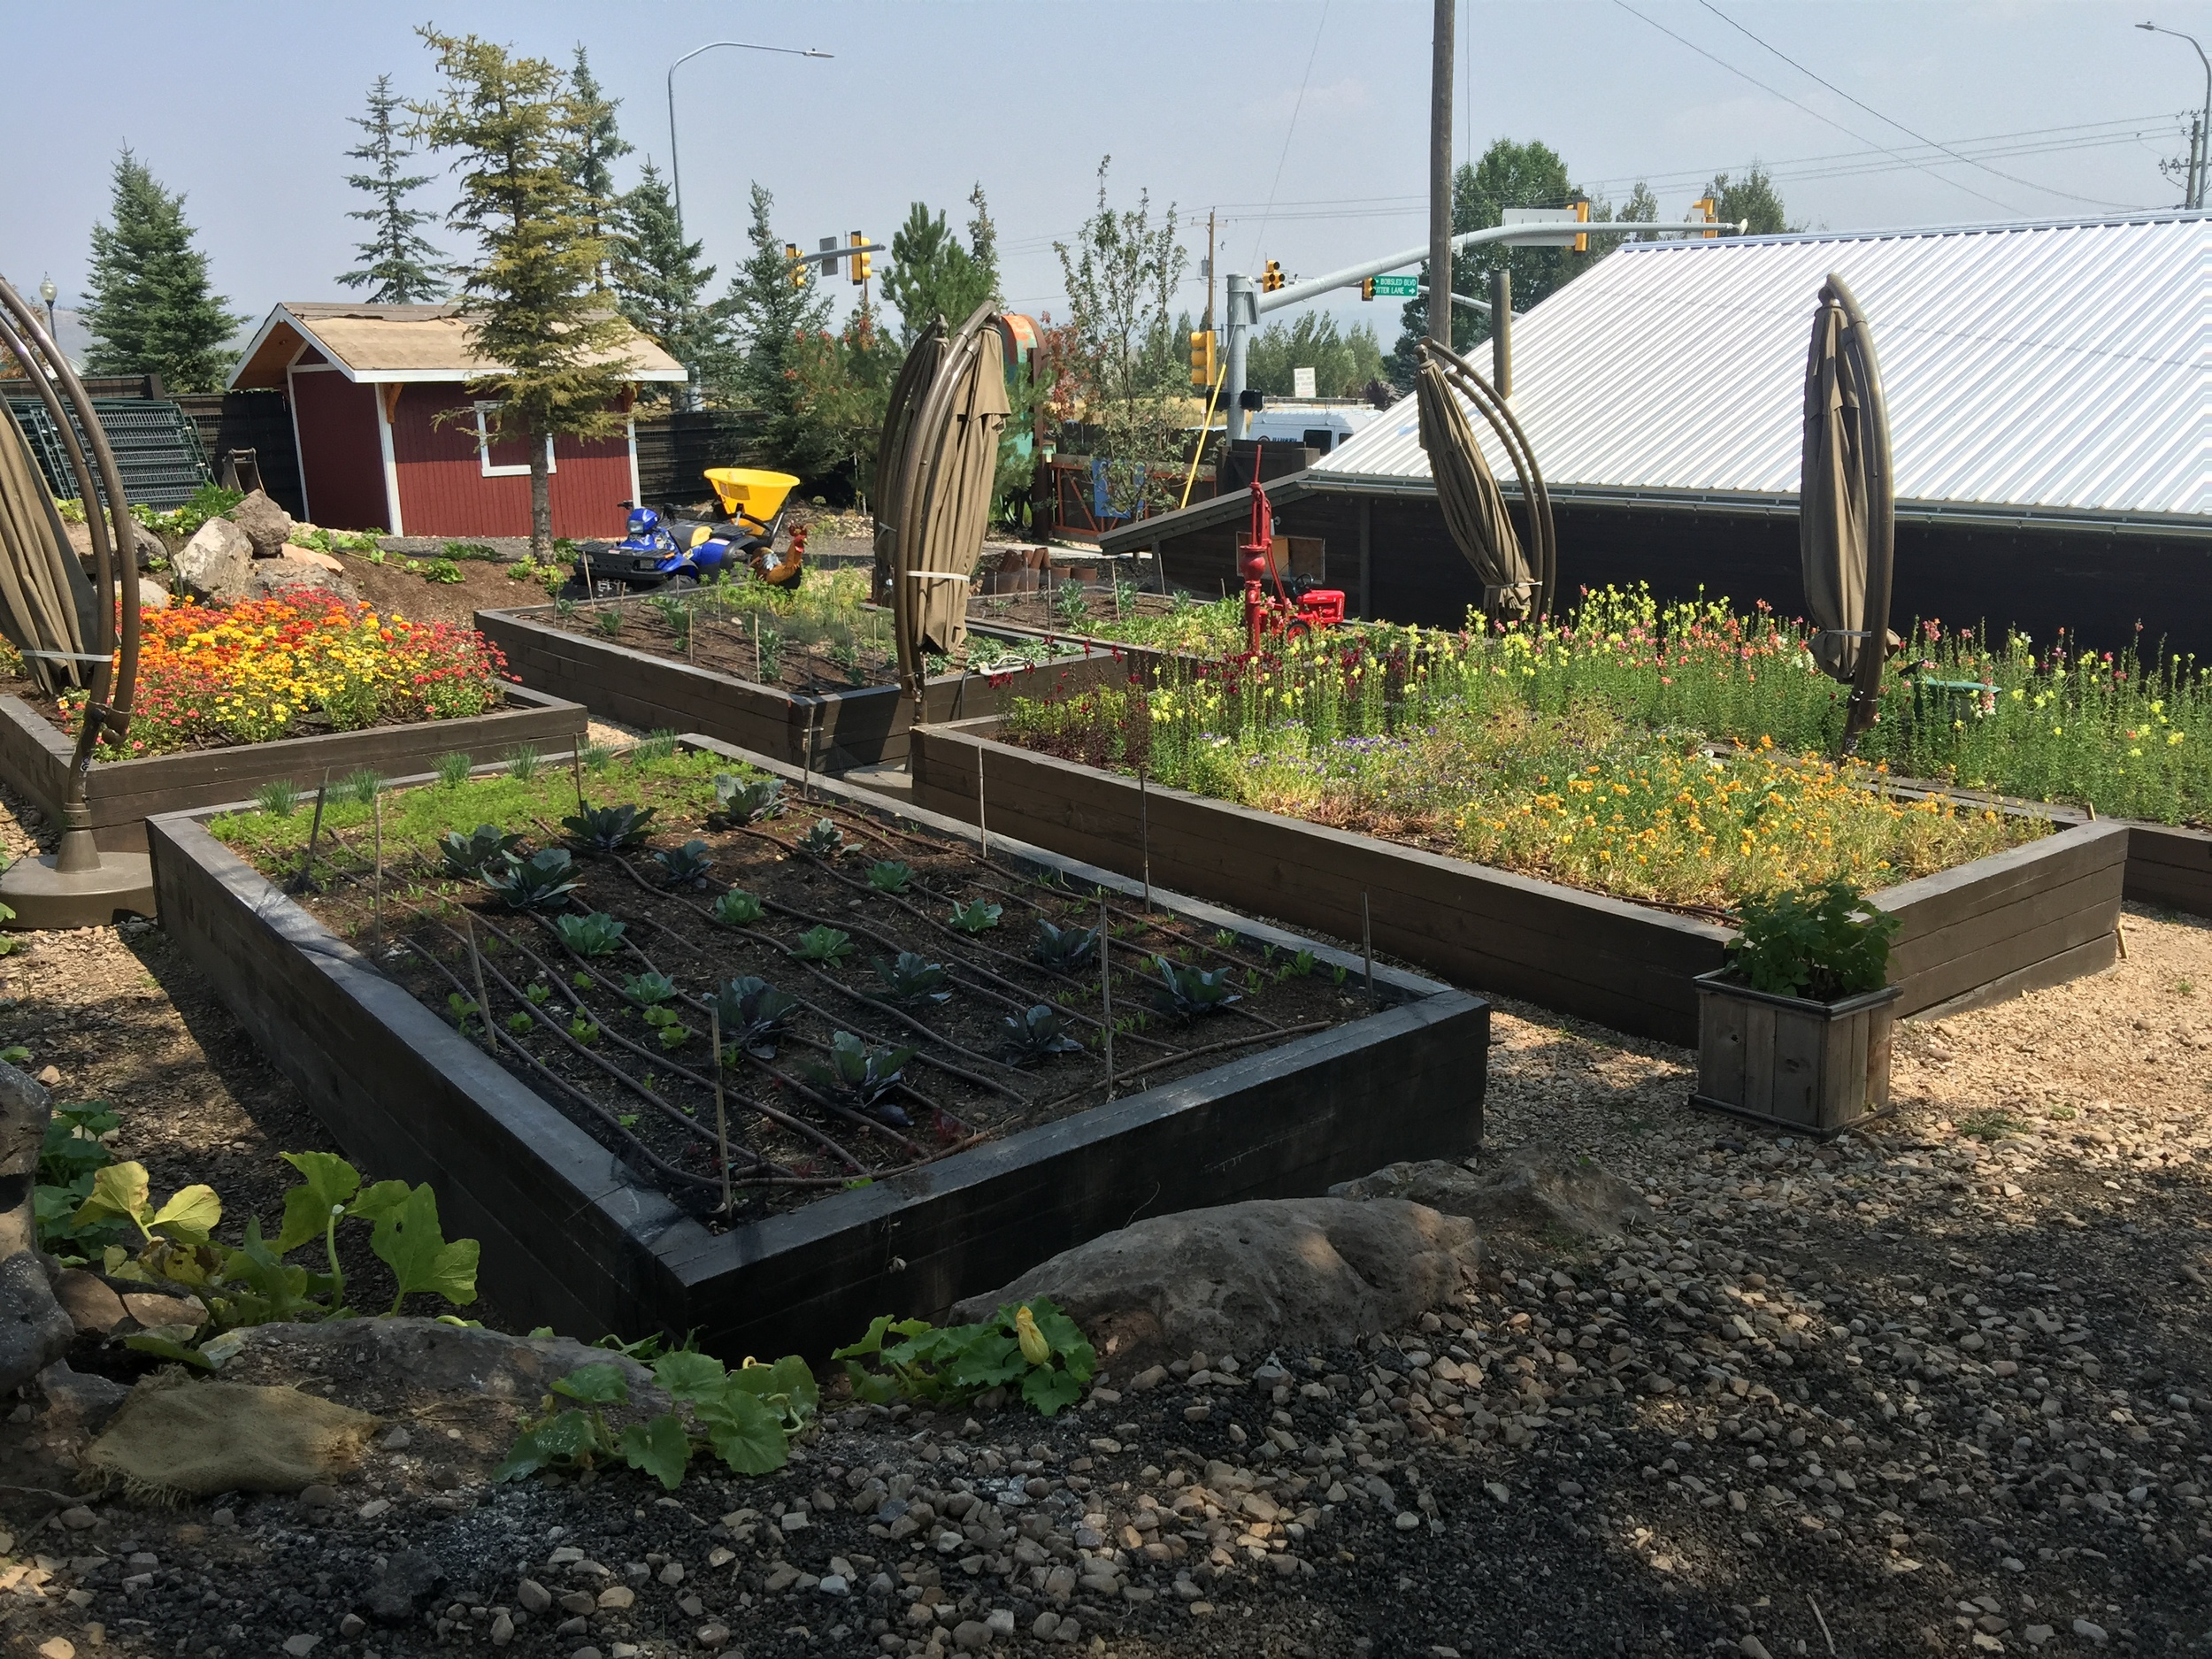 Garden beds at the farm.. growing all kinds of delicious veggies!